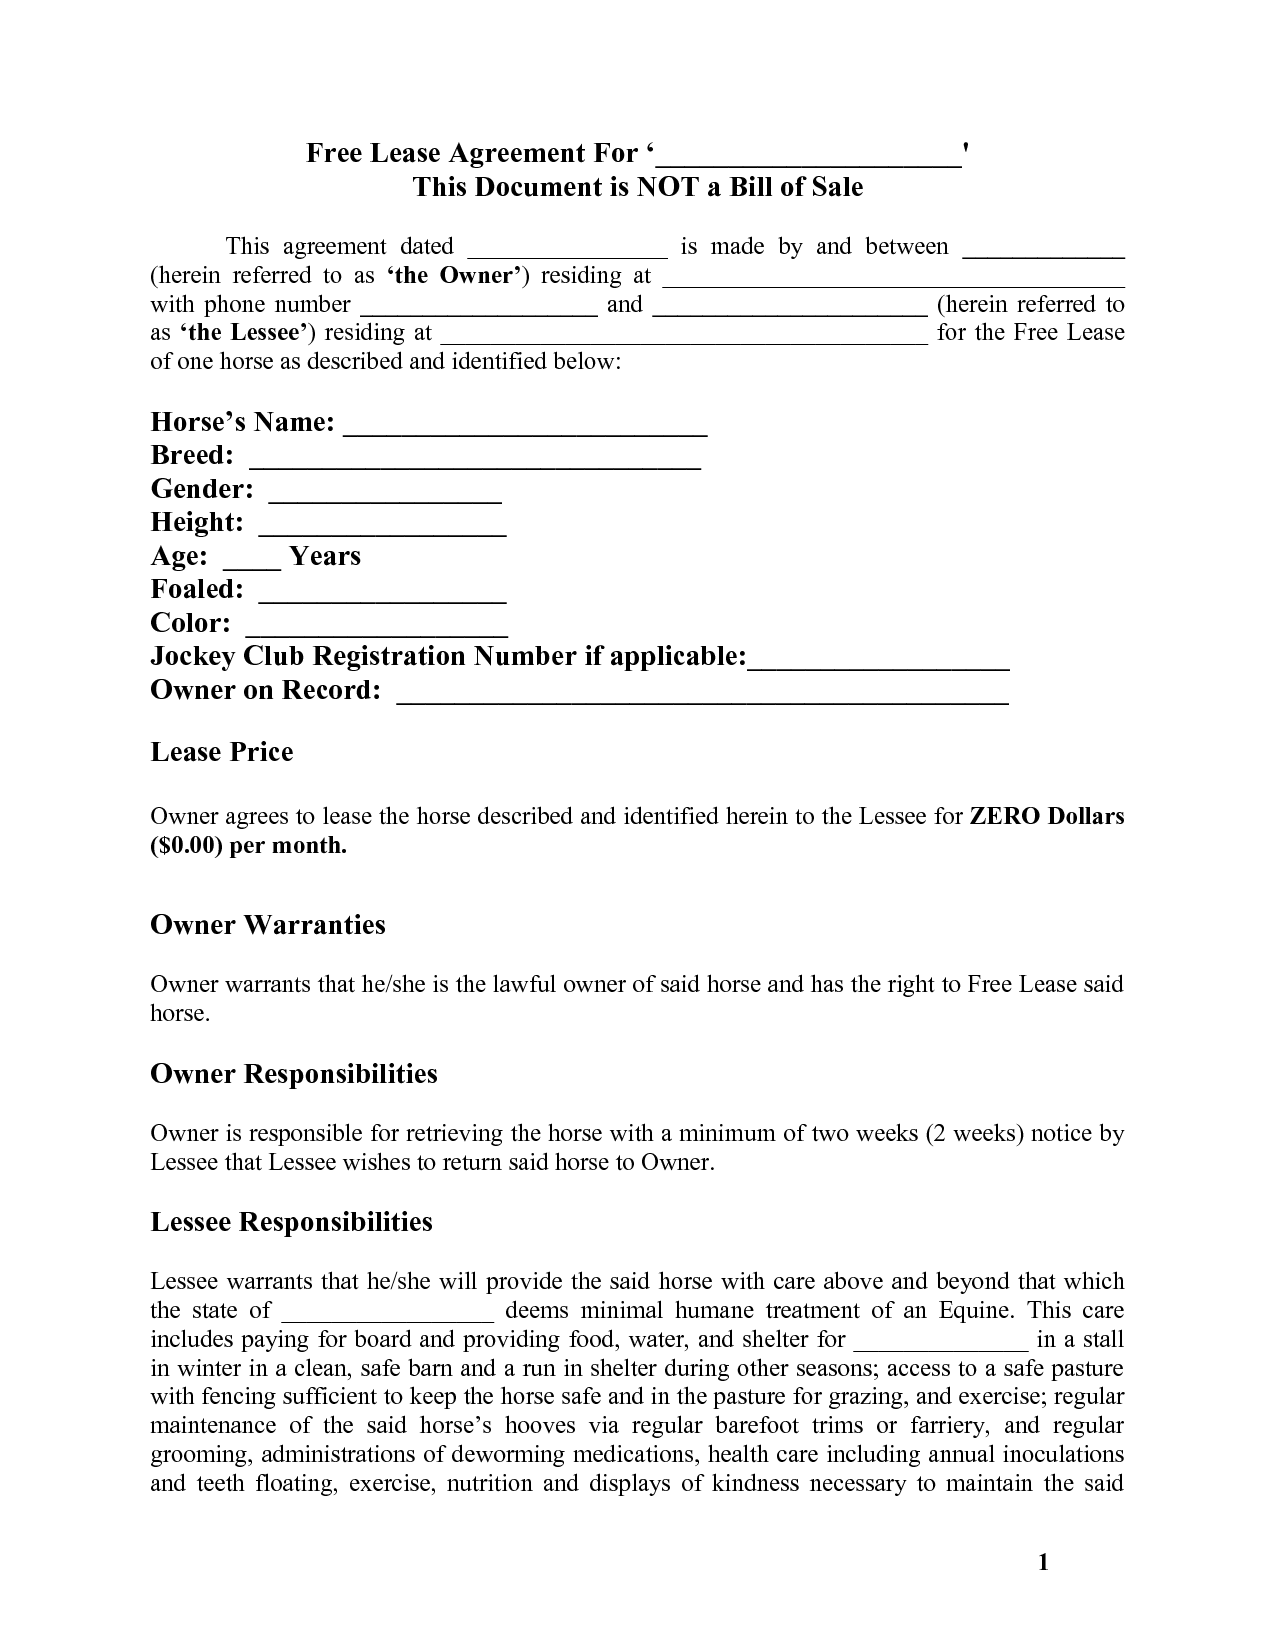 Bill Of Sale Form College Graduate Sample Resume Examples Of A Good Essay  Introduction Dental Hygiene Cover Letter Samples Lawyer Resume Examples Free  ...  Free Horse Bill Of Sale